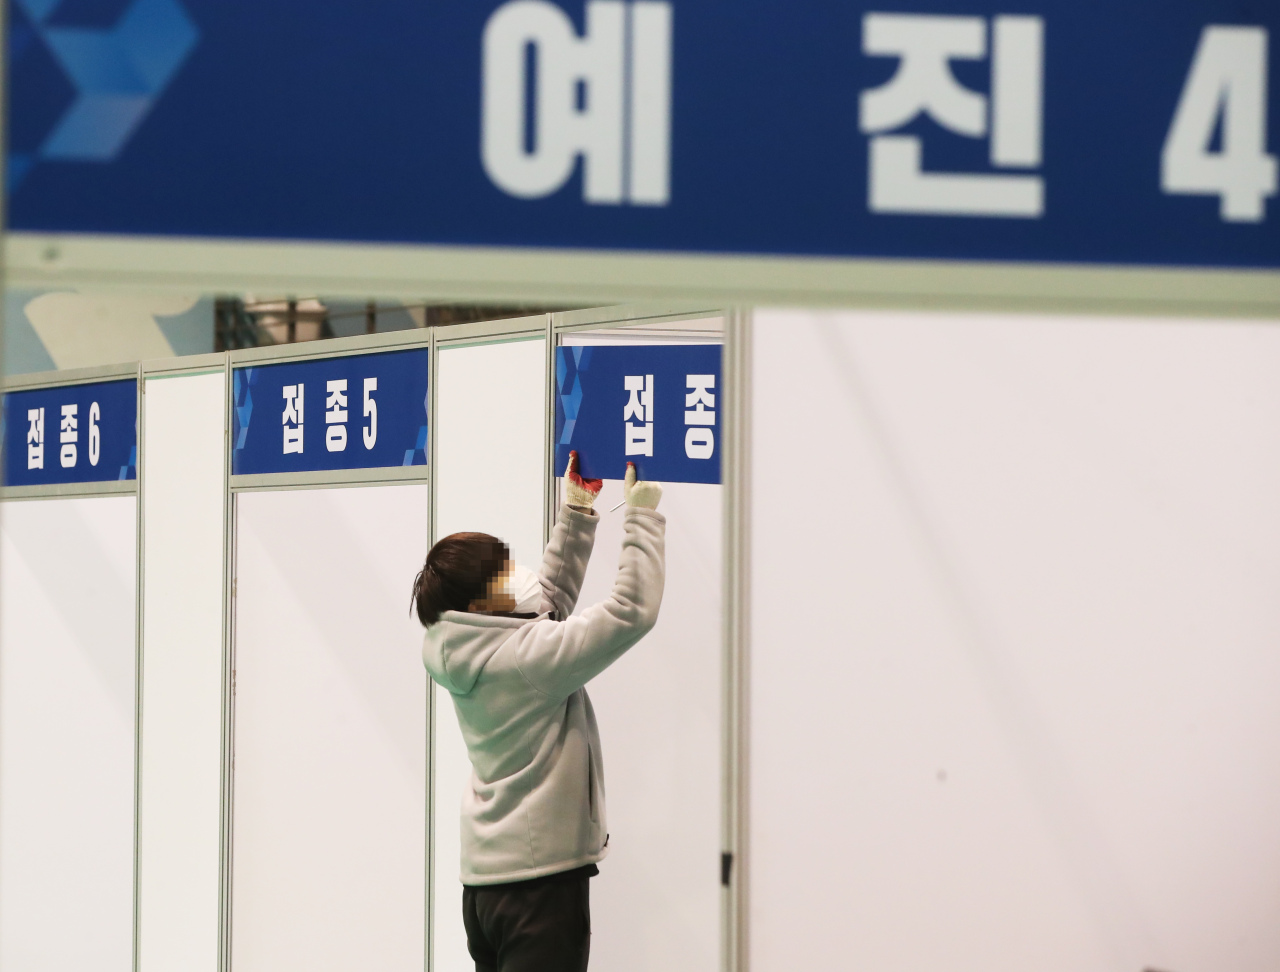 A worker puts up signs at a makeshift COVID-19 vaccination center in Suwon, 46 km south of Seoul, on Monday. (Yonhap)